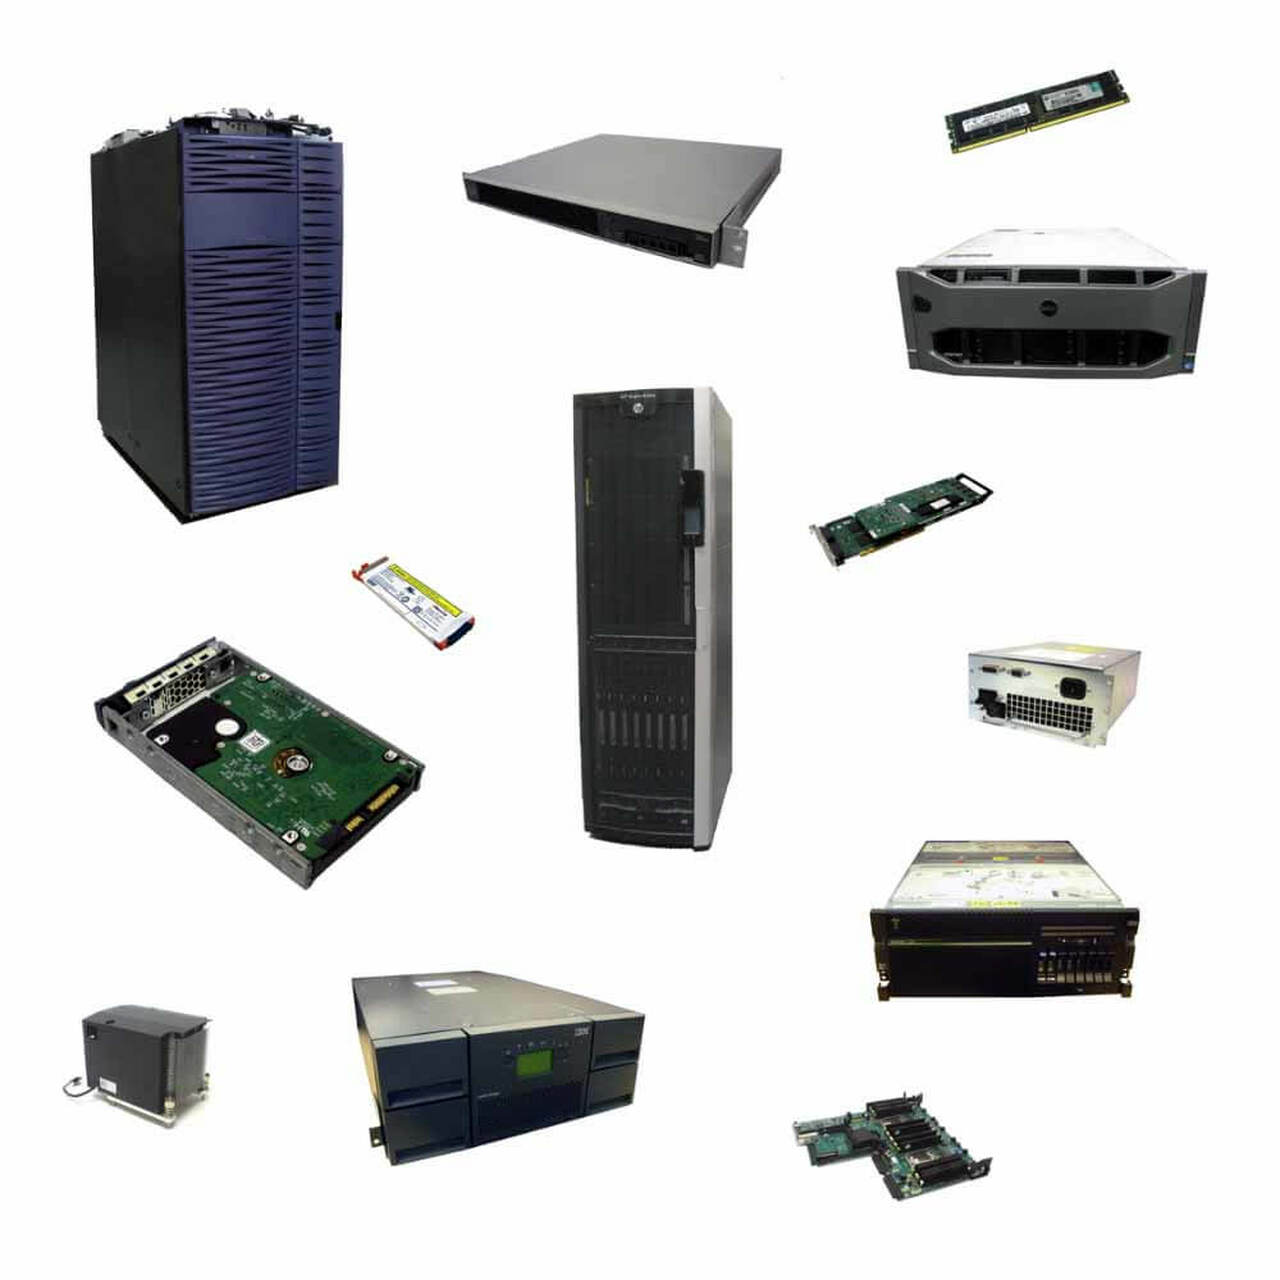 1000s of brand name refurbished computer servers and spare parts at Flagship Technologies. Learn more